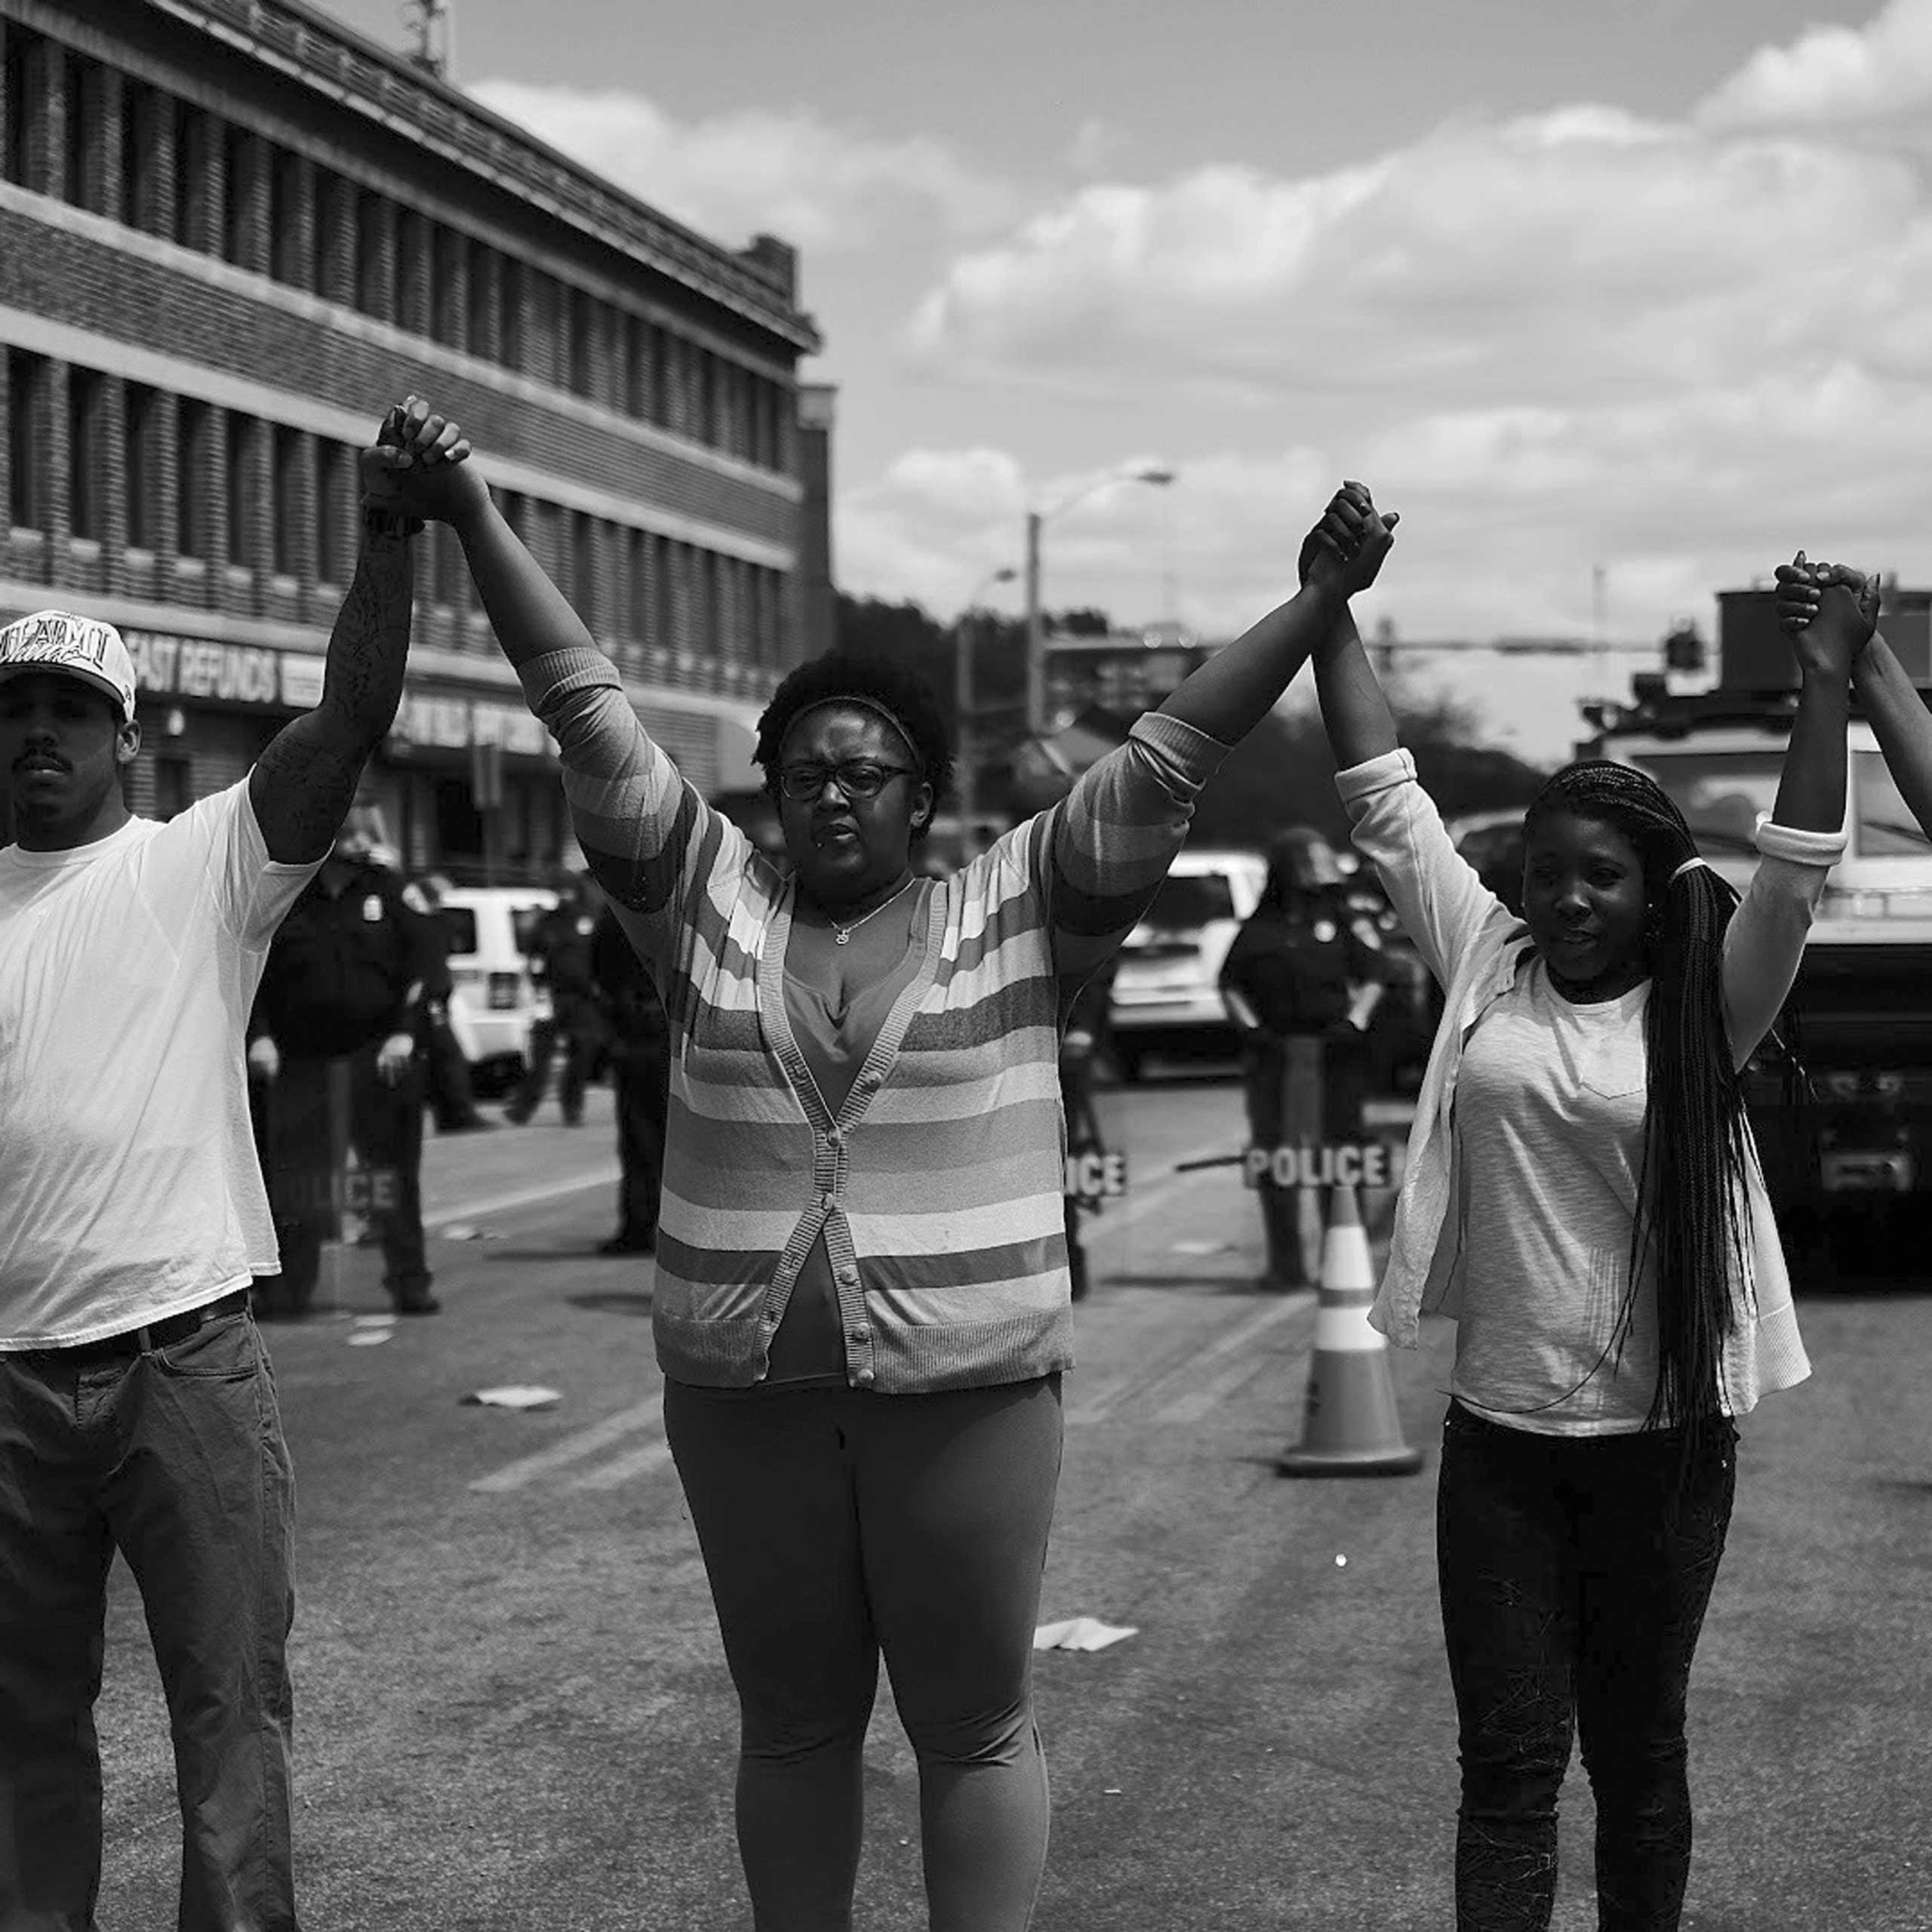 Neighborhood residents create a peace circle, near North ave and Fulton in Baltimore on April 28, 2015.